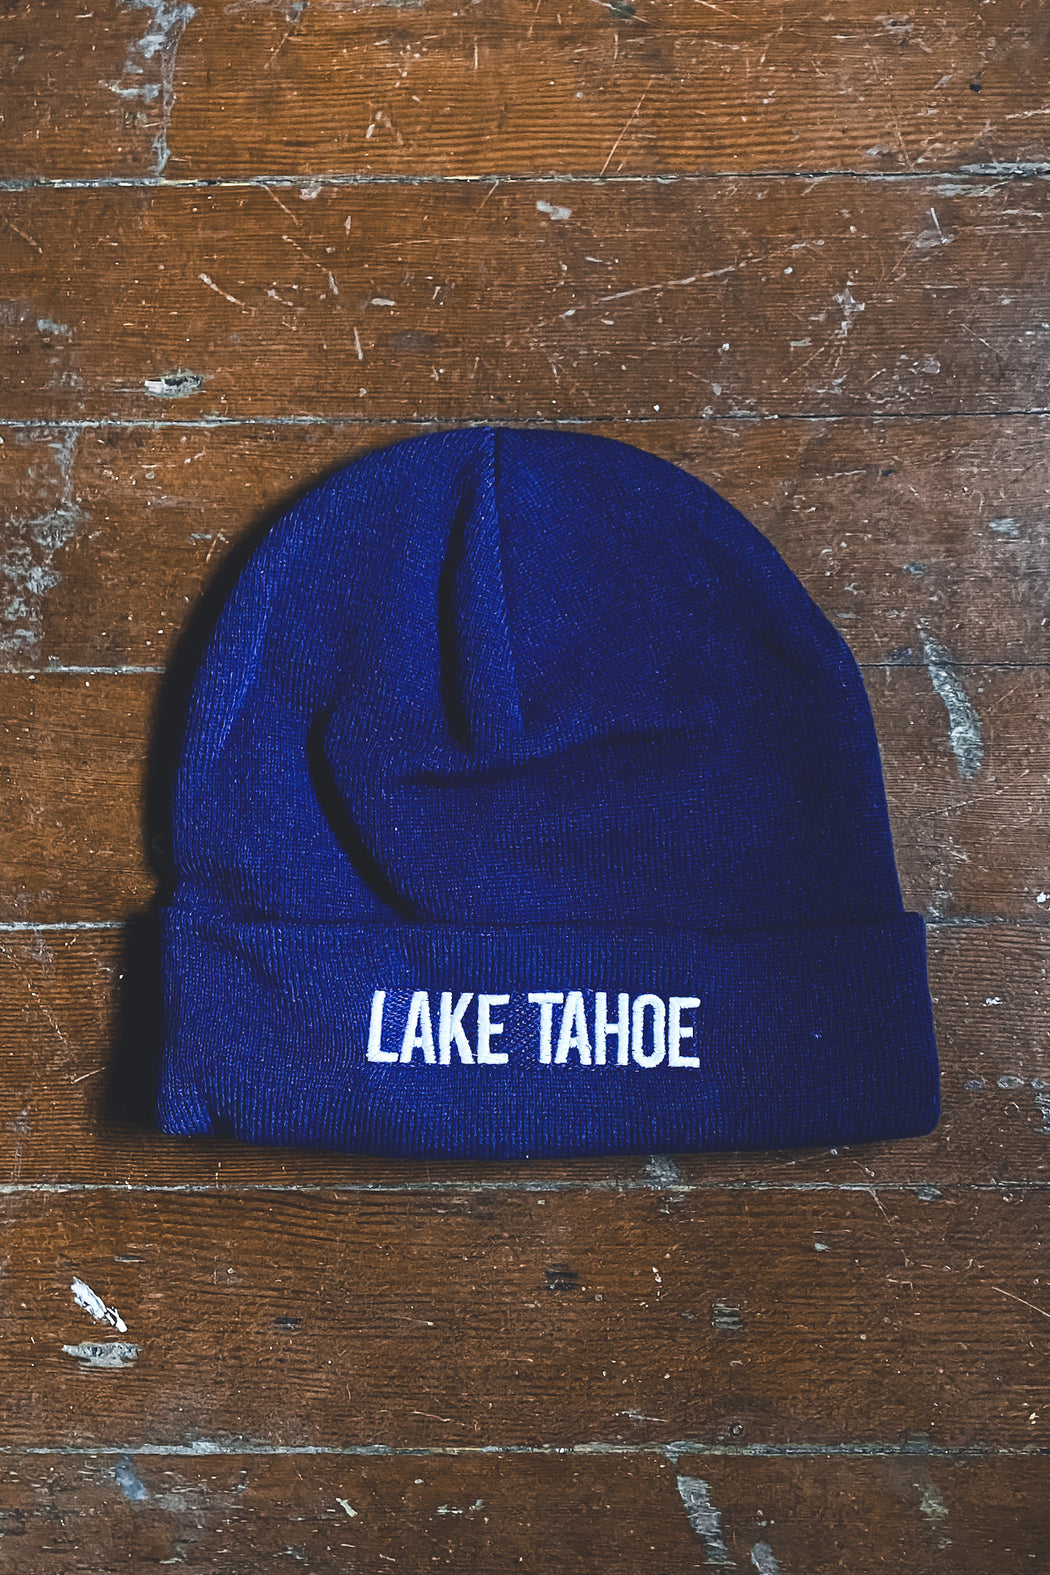 Tahoe Soul Lake Tahoe Embroidered Beanie in Blue